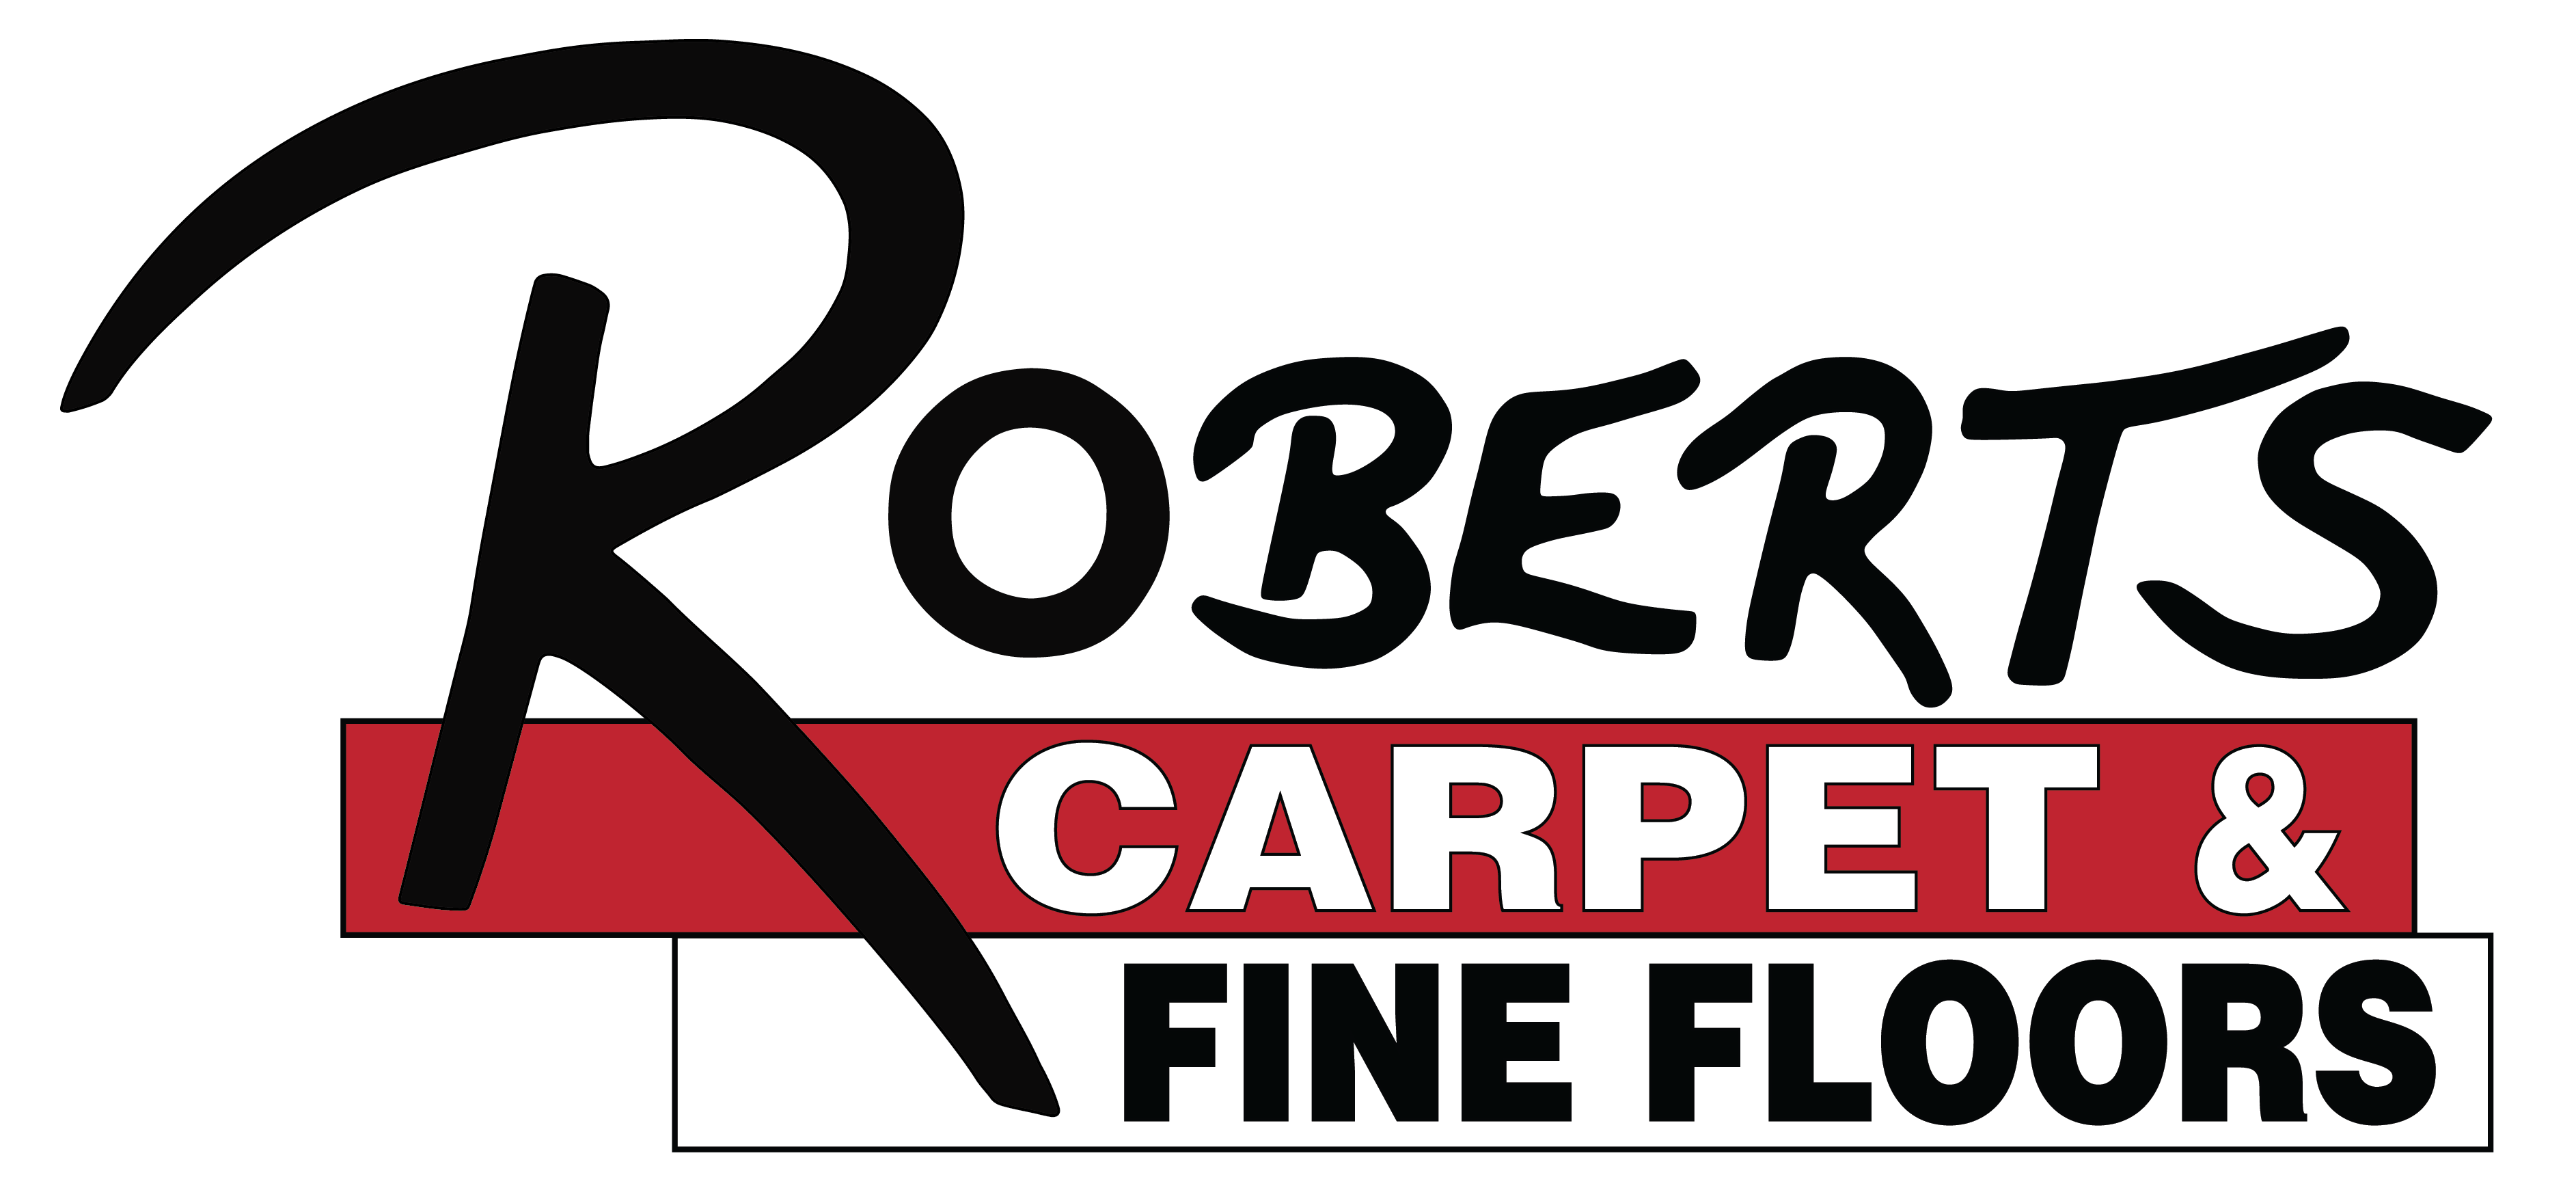 Roberts carpet anf fine floors | Roberts Carpet & Fine Floors